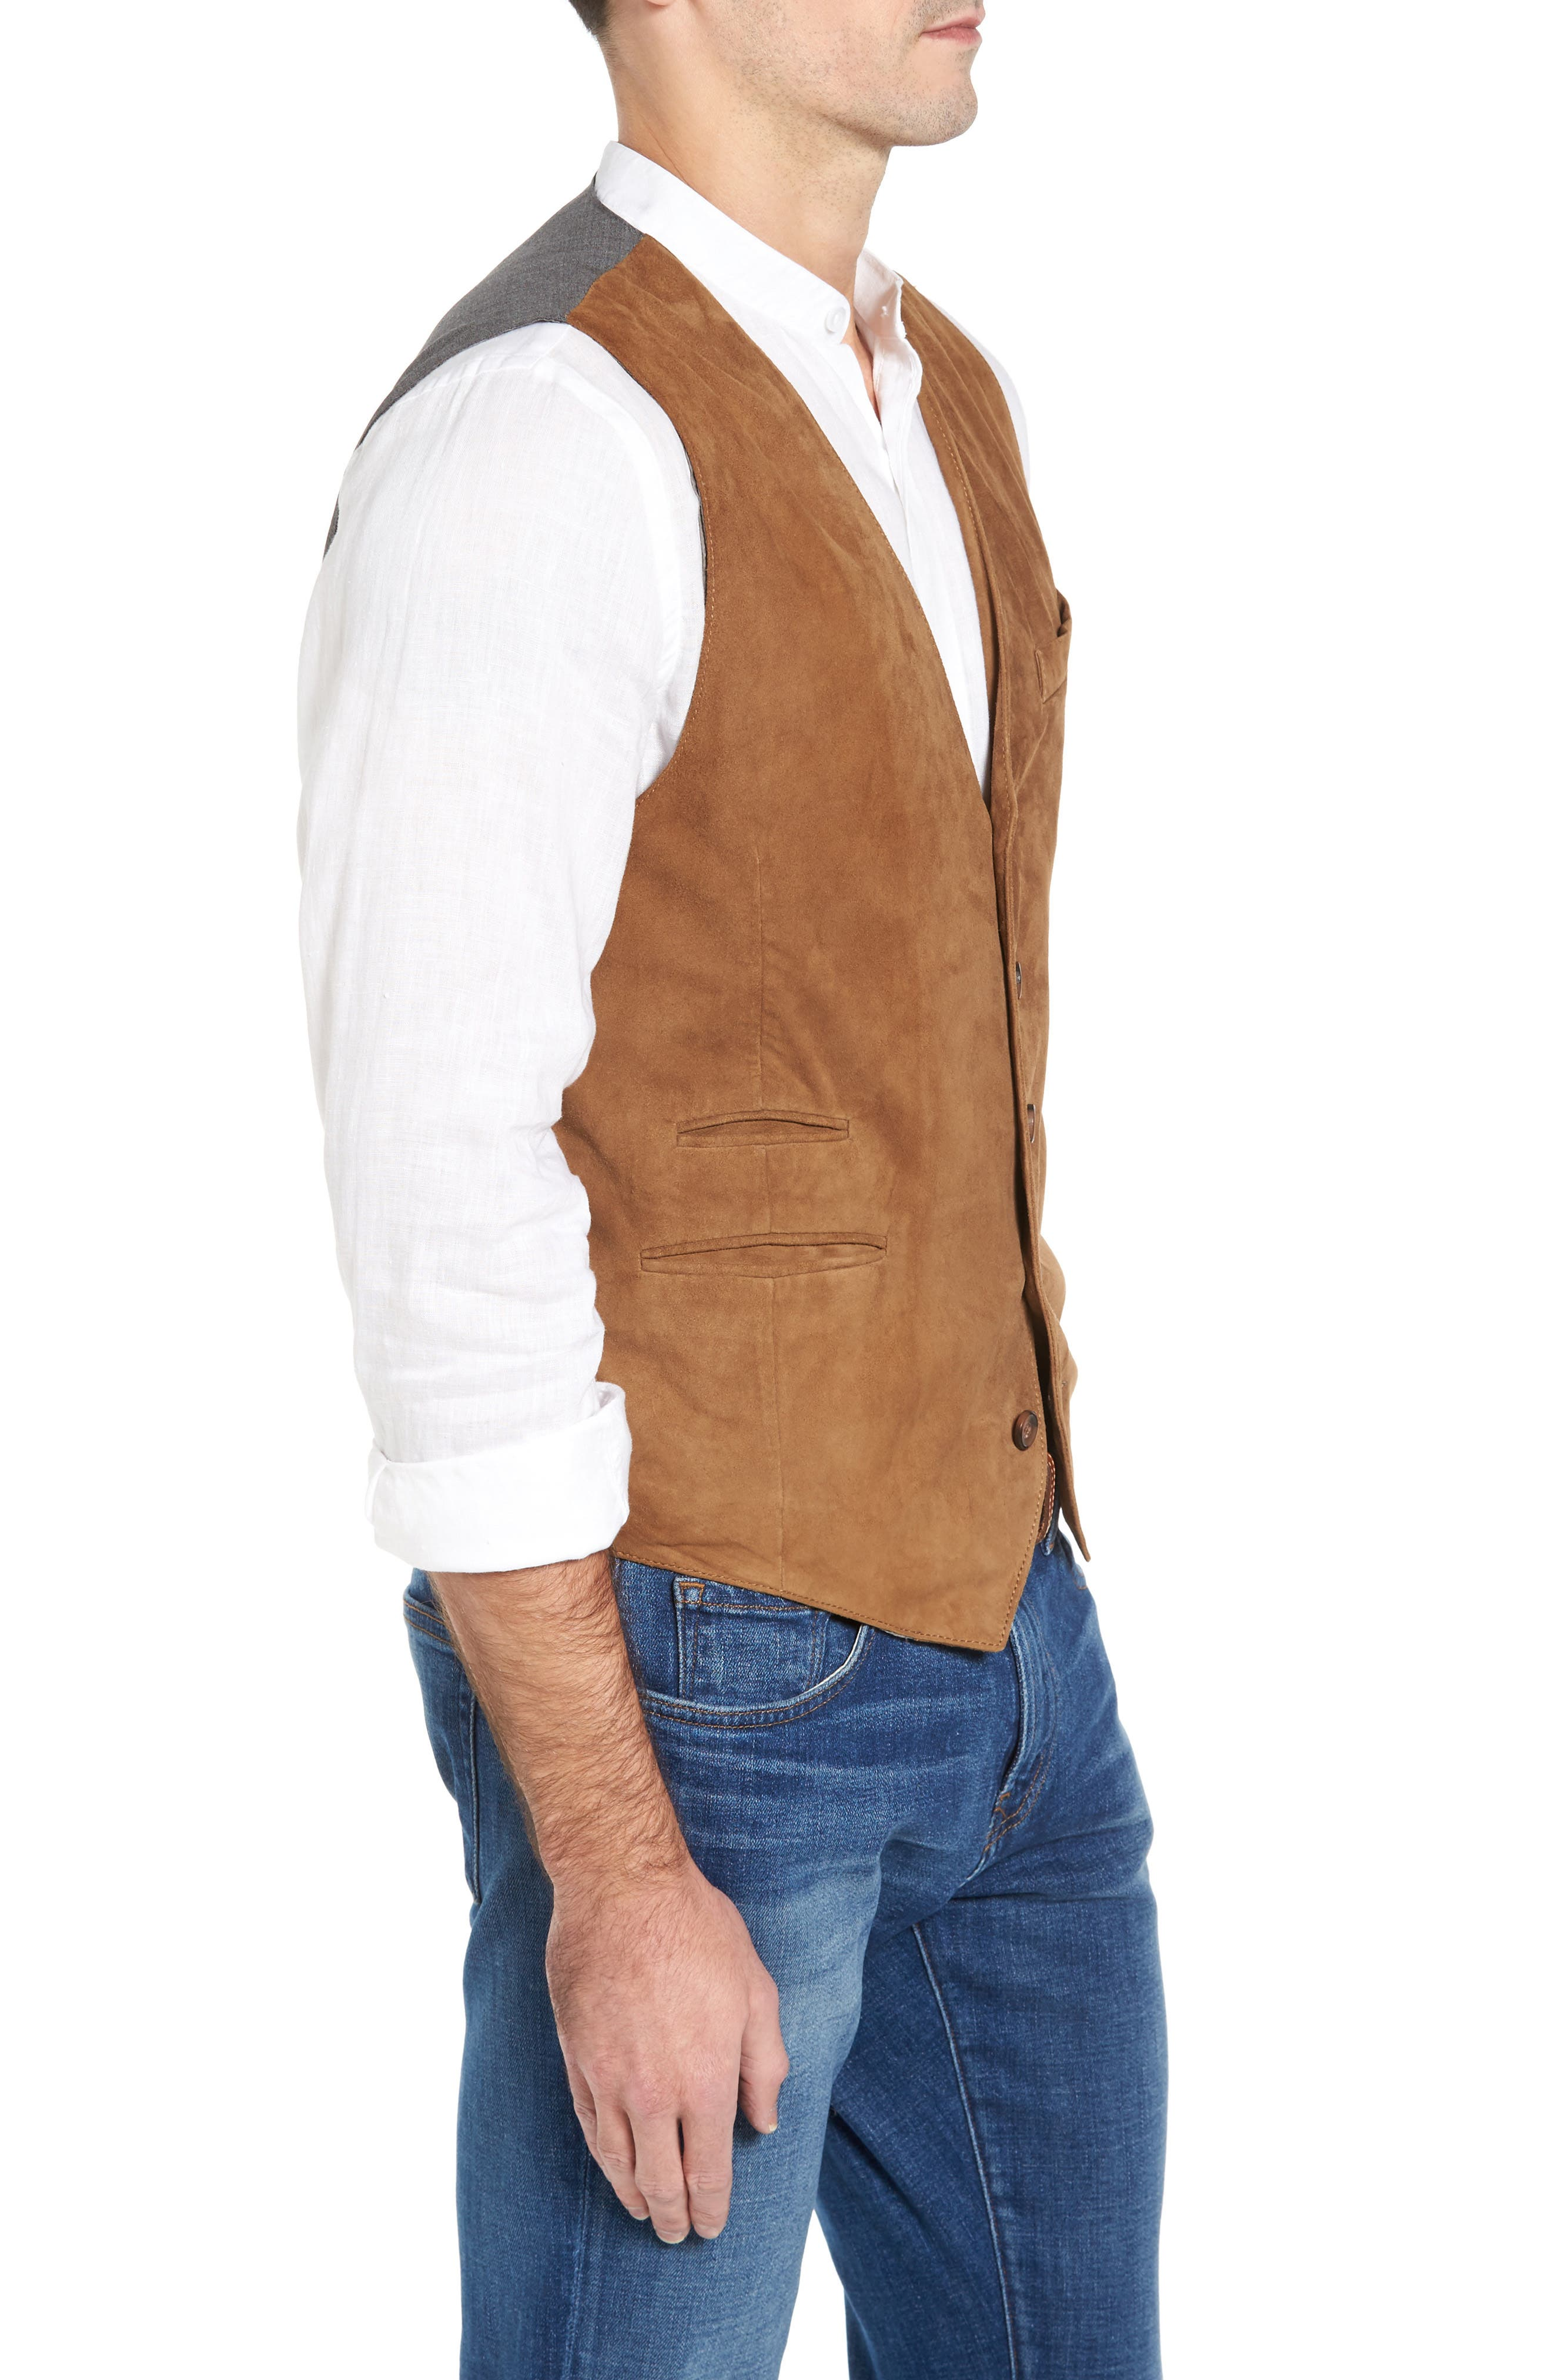 Lamb Front Vest,                             Alternate thumbnail 3, color,                             Tobacco